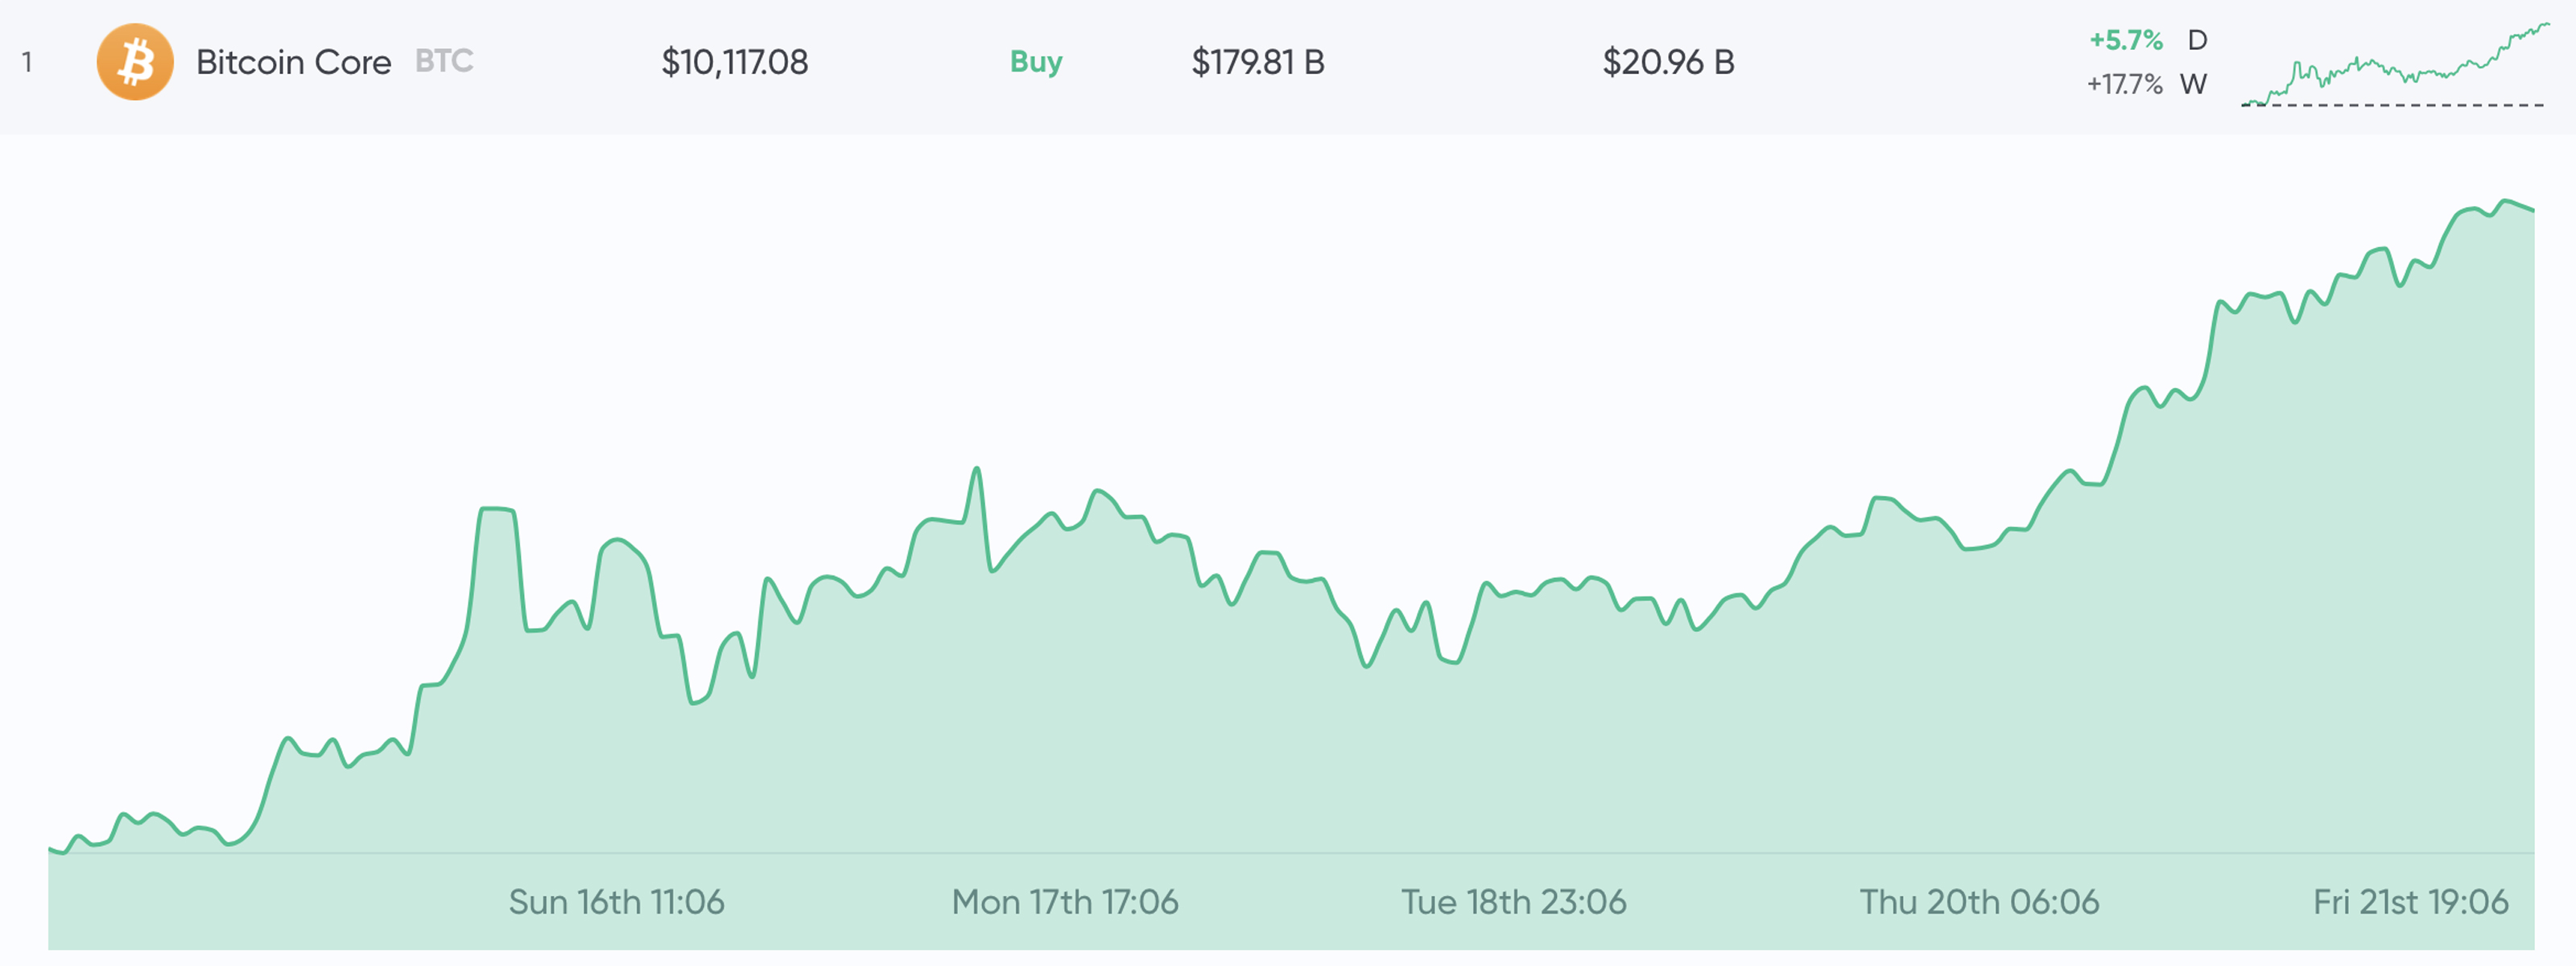 More than One Year Later, BTC Price Skyrockets Past $ 10K